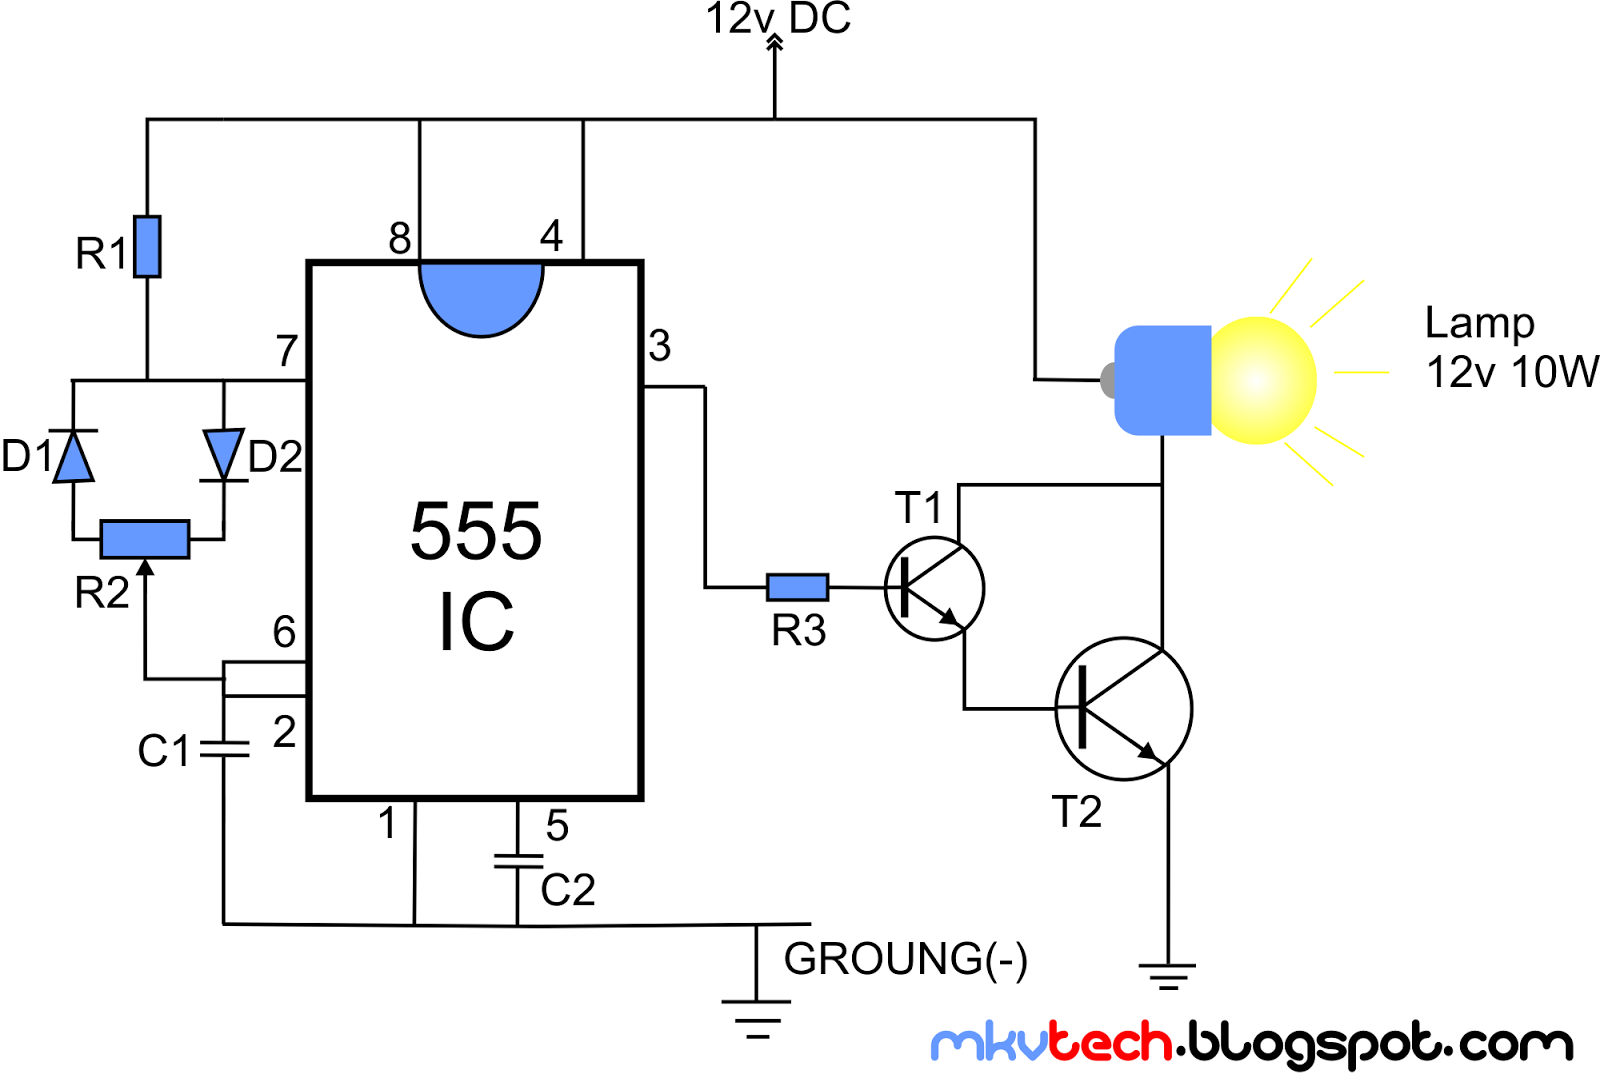 diy pwm lamp dimmer using 555 ic